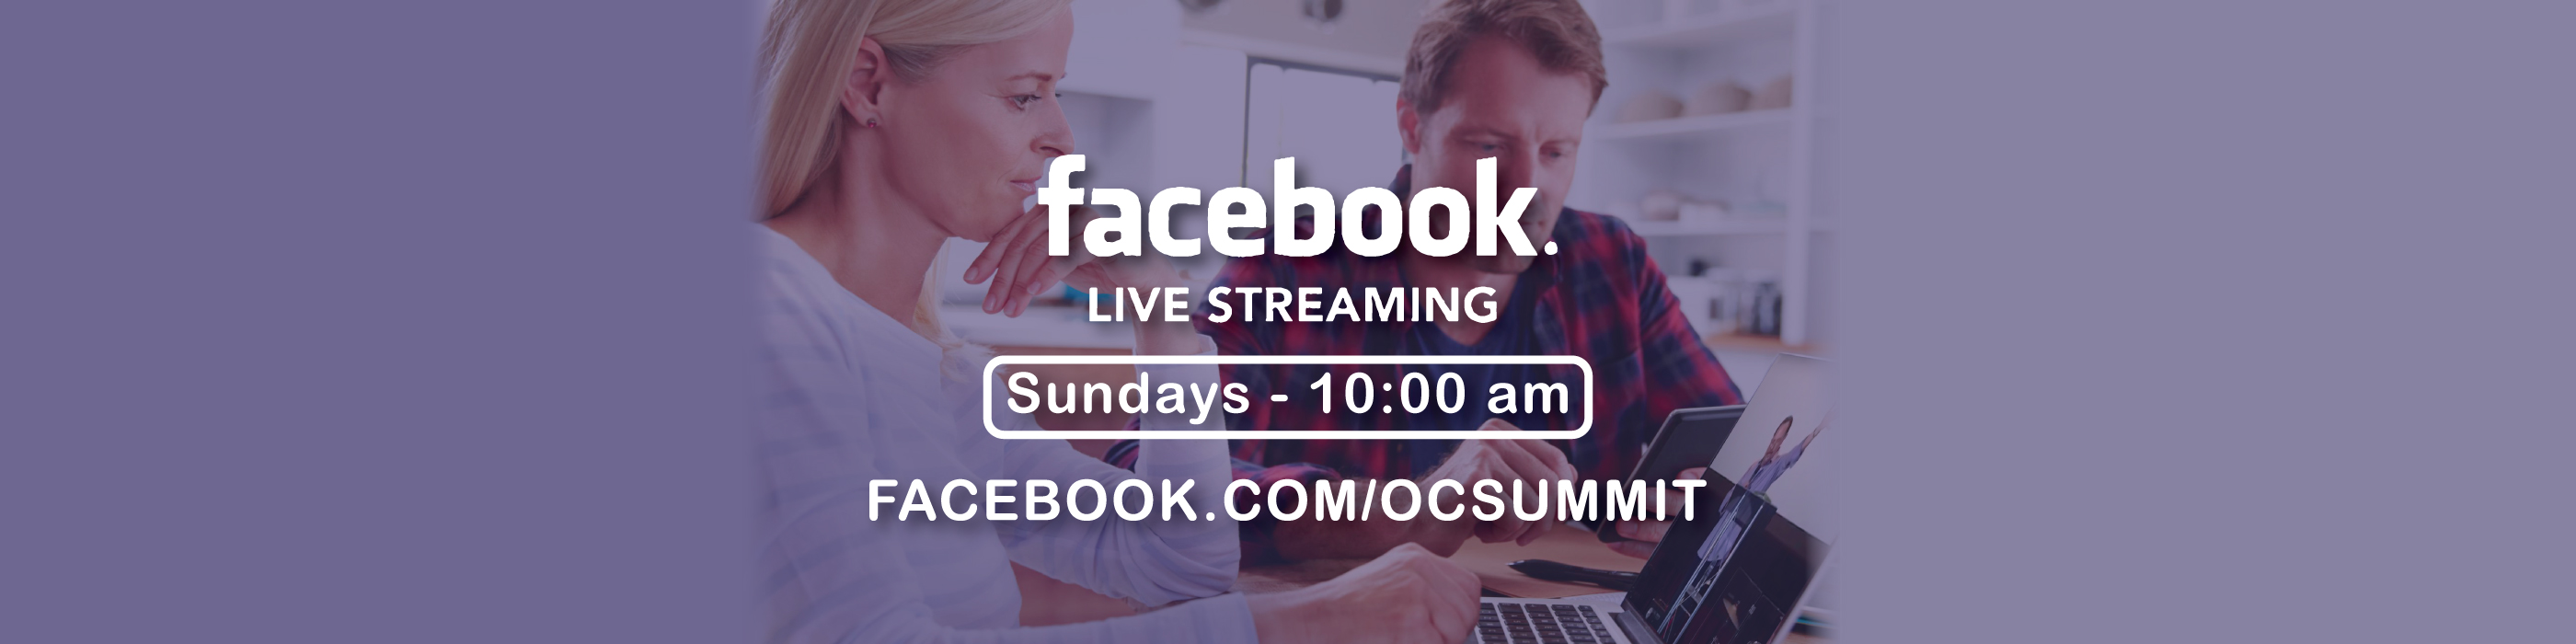 Summit-Church-Live-Streaming-0320-WEB-2800x700